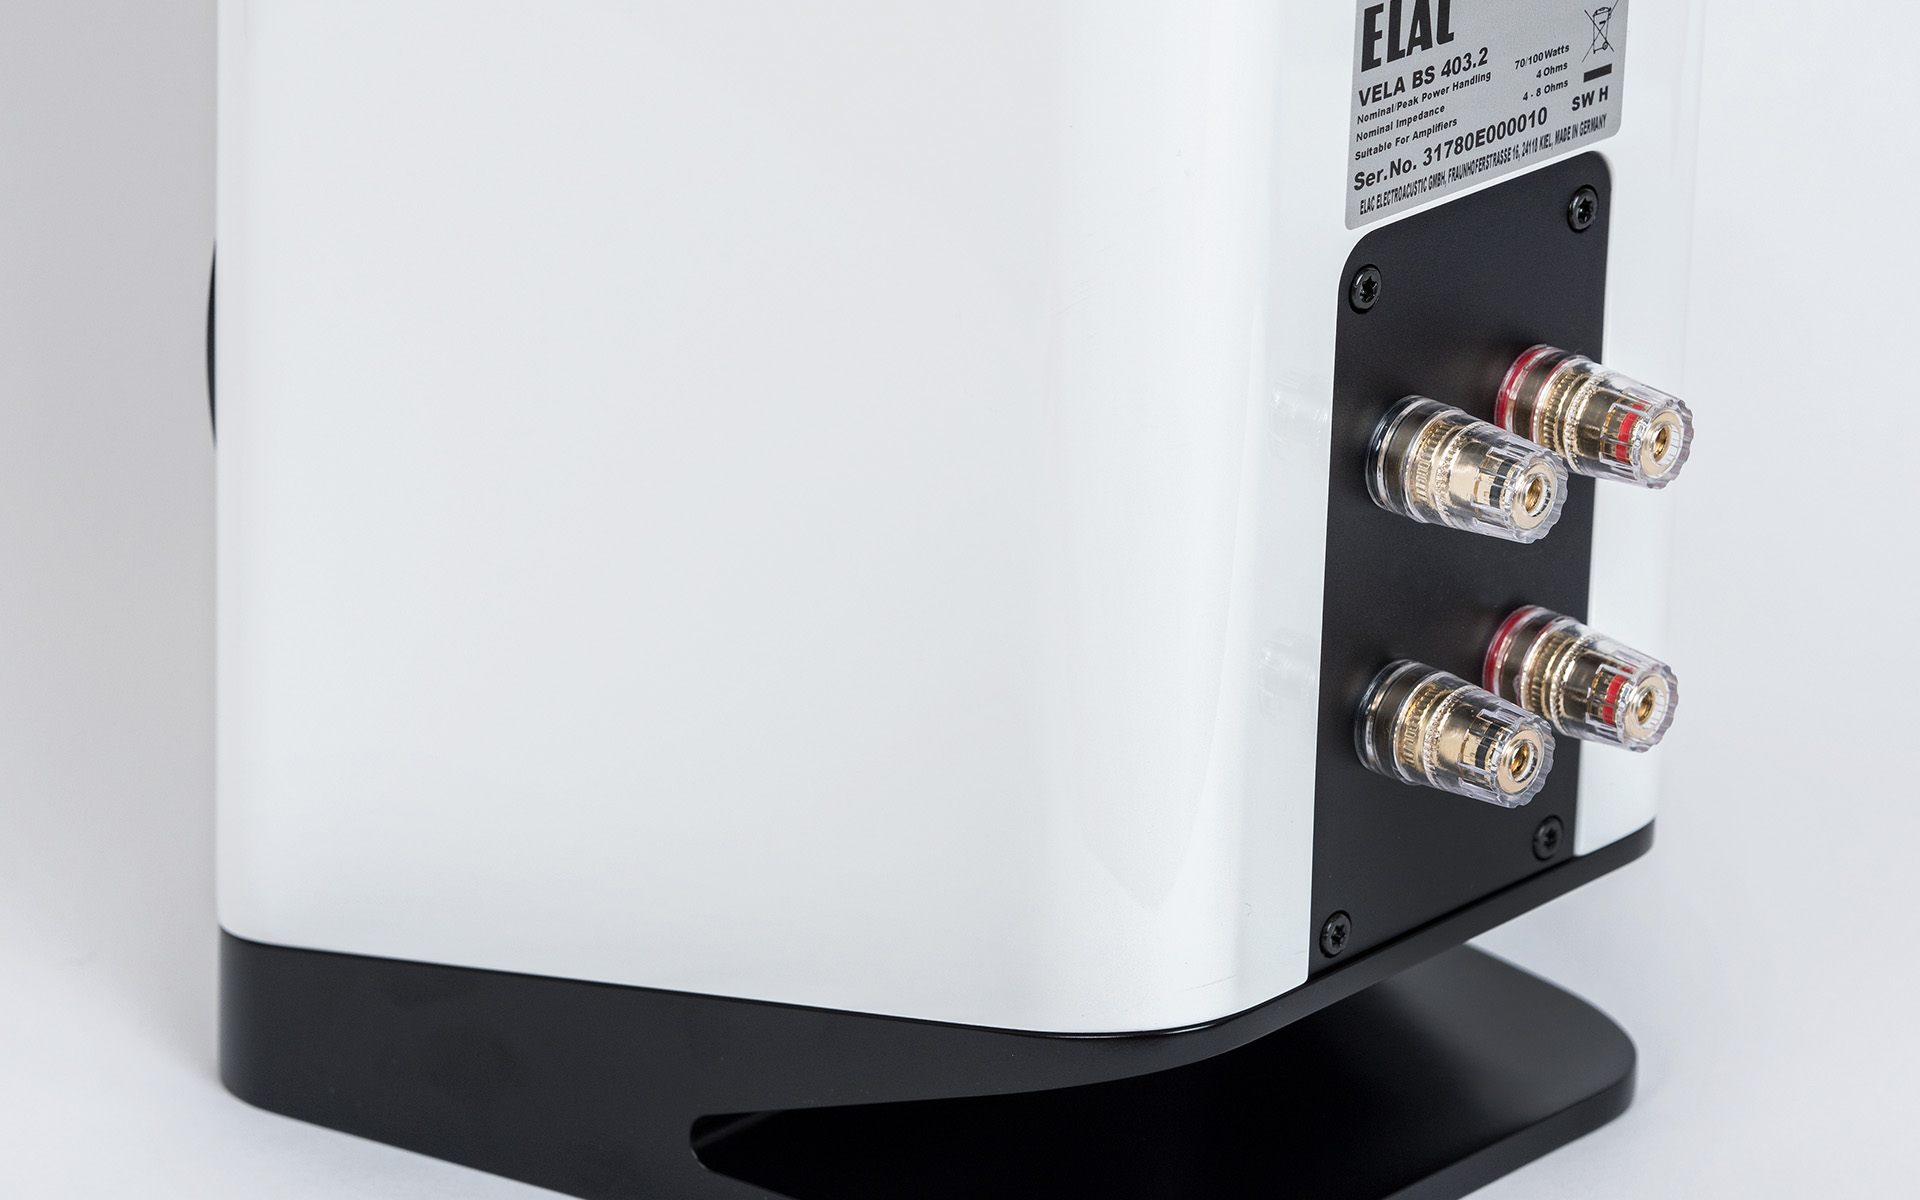 ELAC Vela BS 403: «Hi-Fi Choice» рекомендует